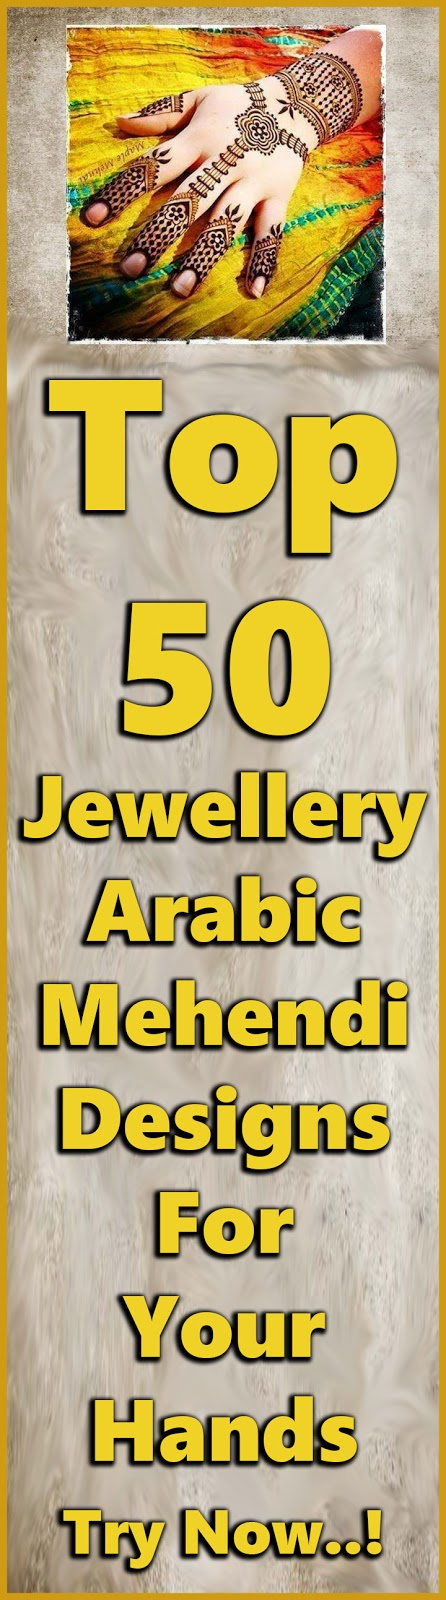 Beautiful Jewellery Arabic Mehndi Designs For Hands